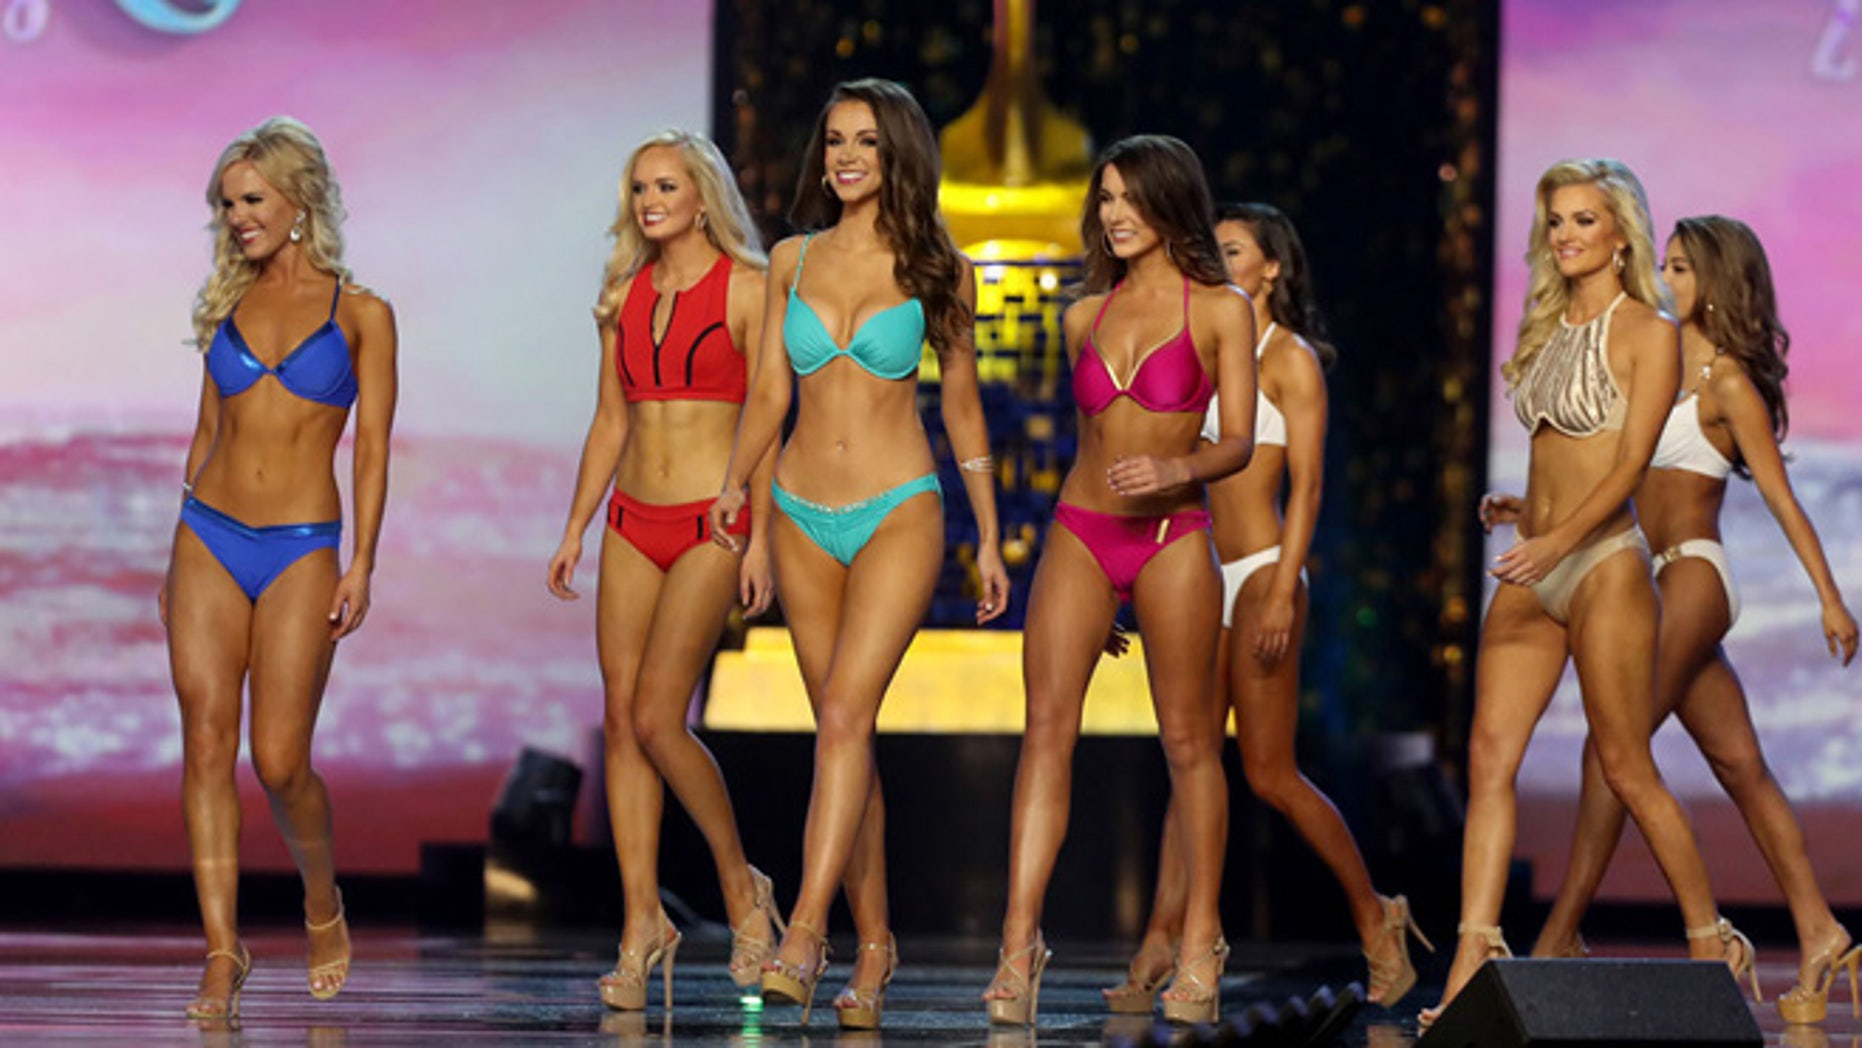 Miss America 2018 contestants walk the stage during the fitness competition during the second night of preliminaries in Atlantic City, NJ.